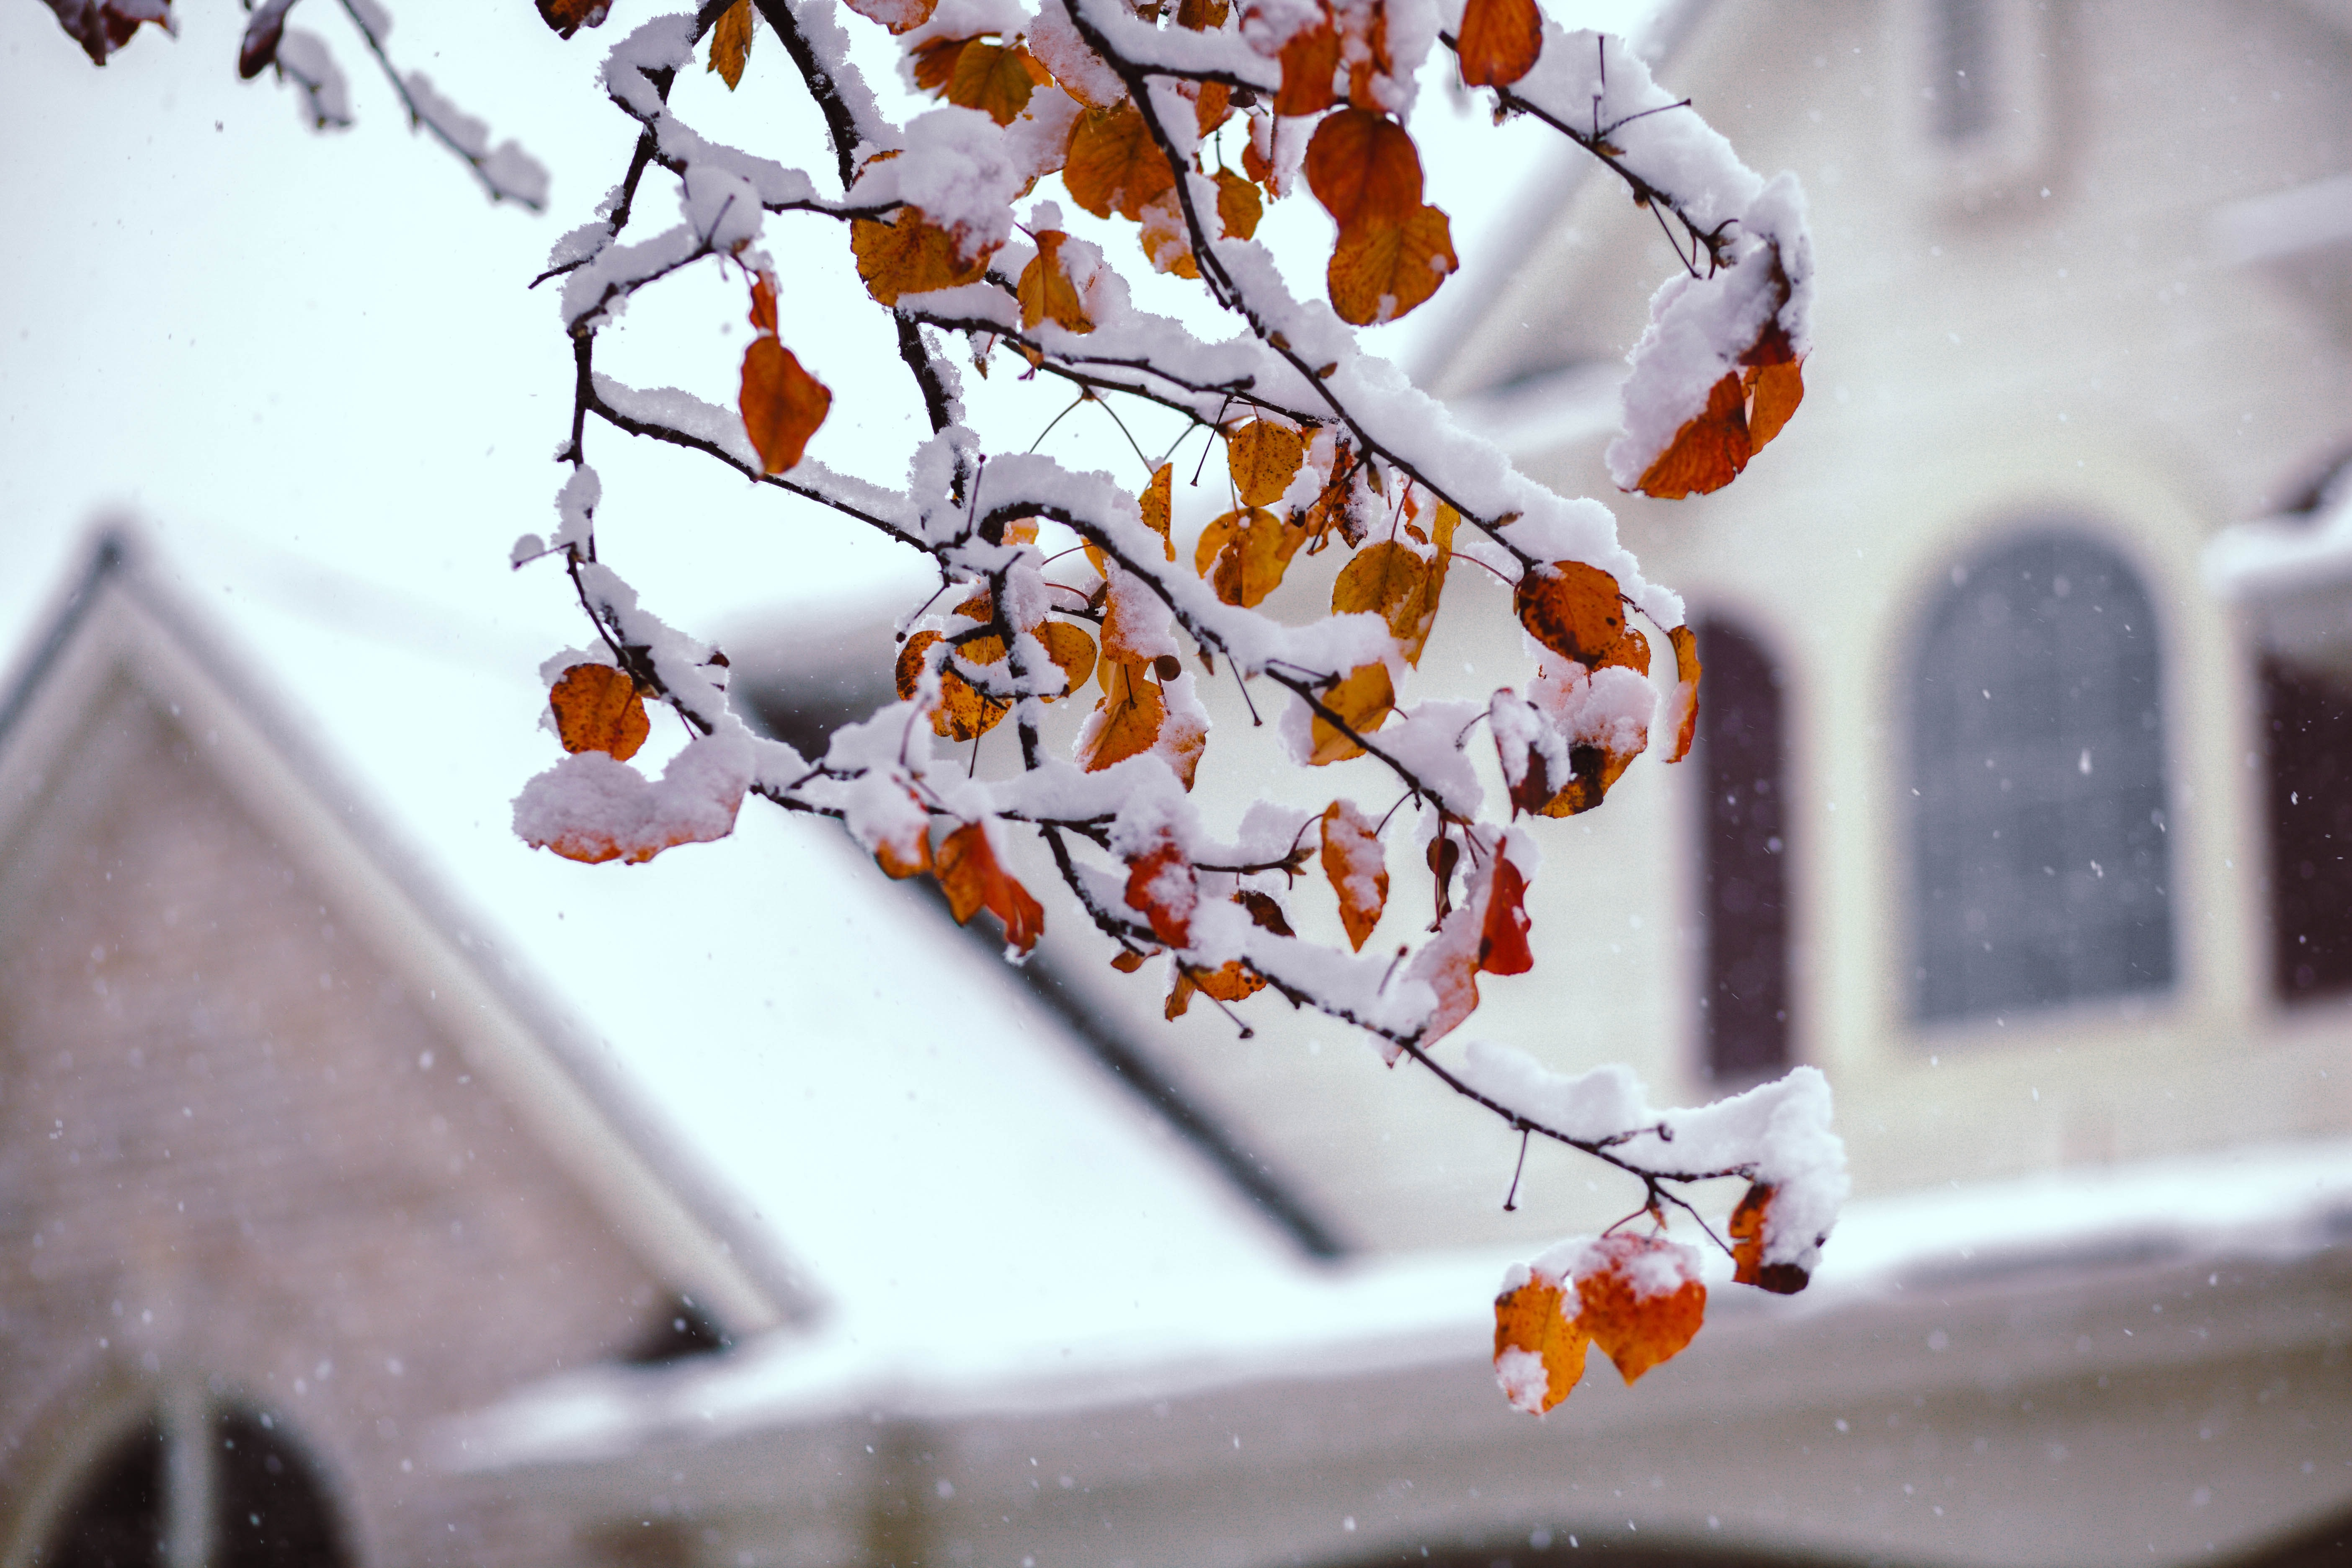 shallow focus photography of tree branch bearing fruits covered in snow